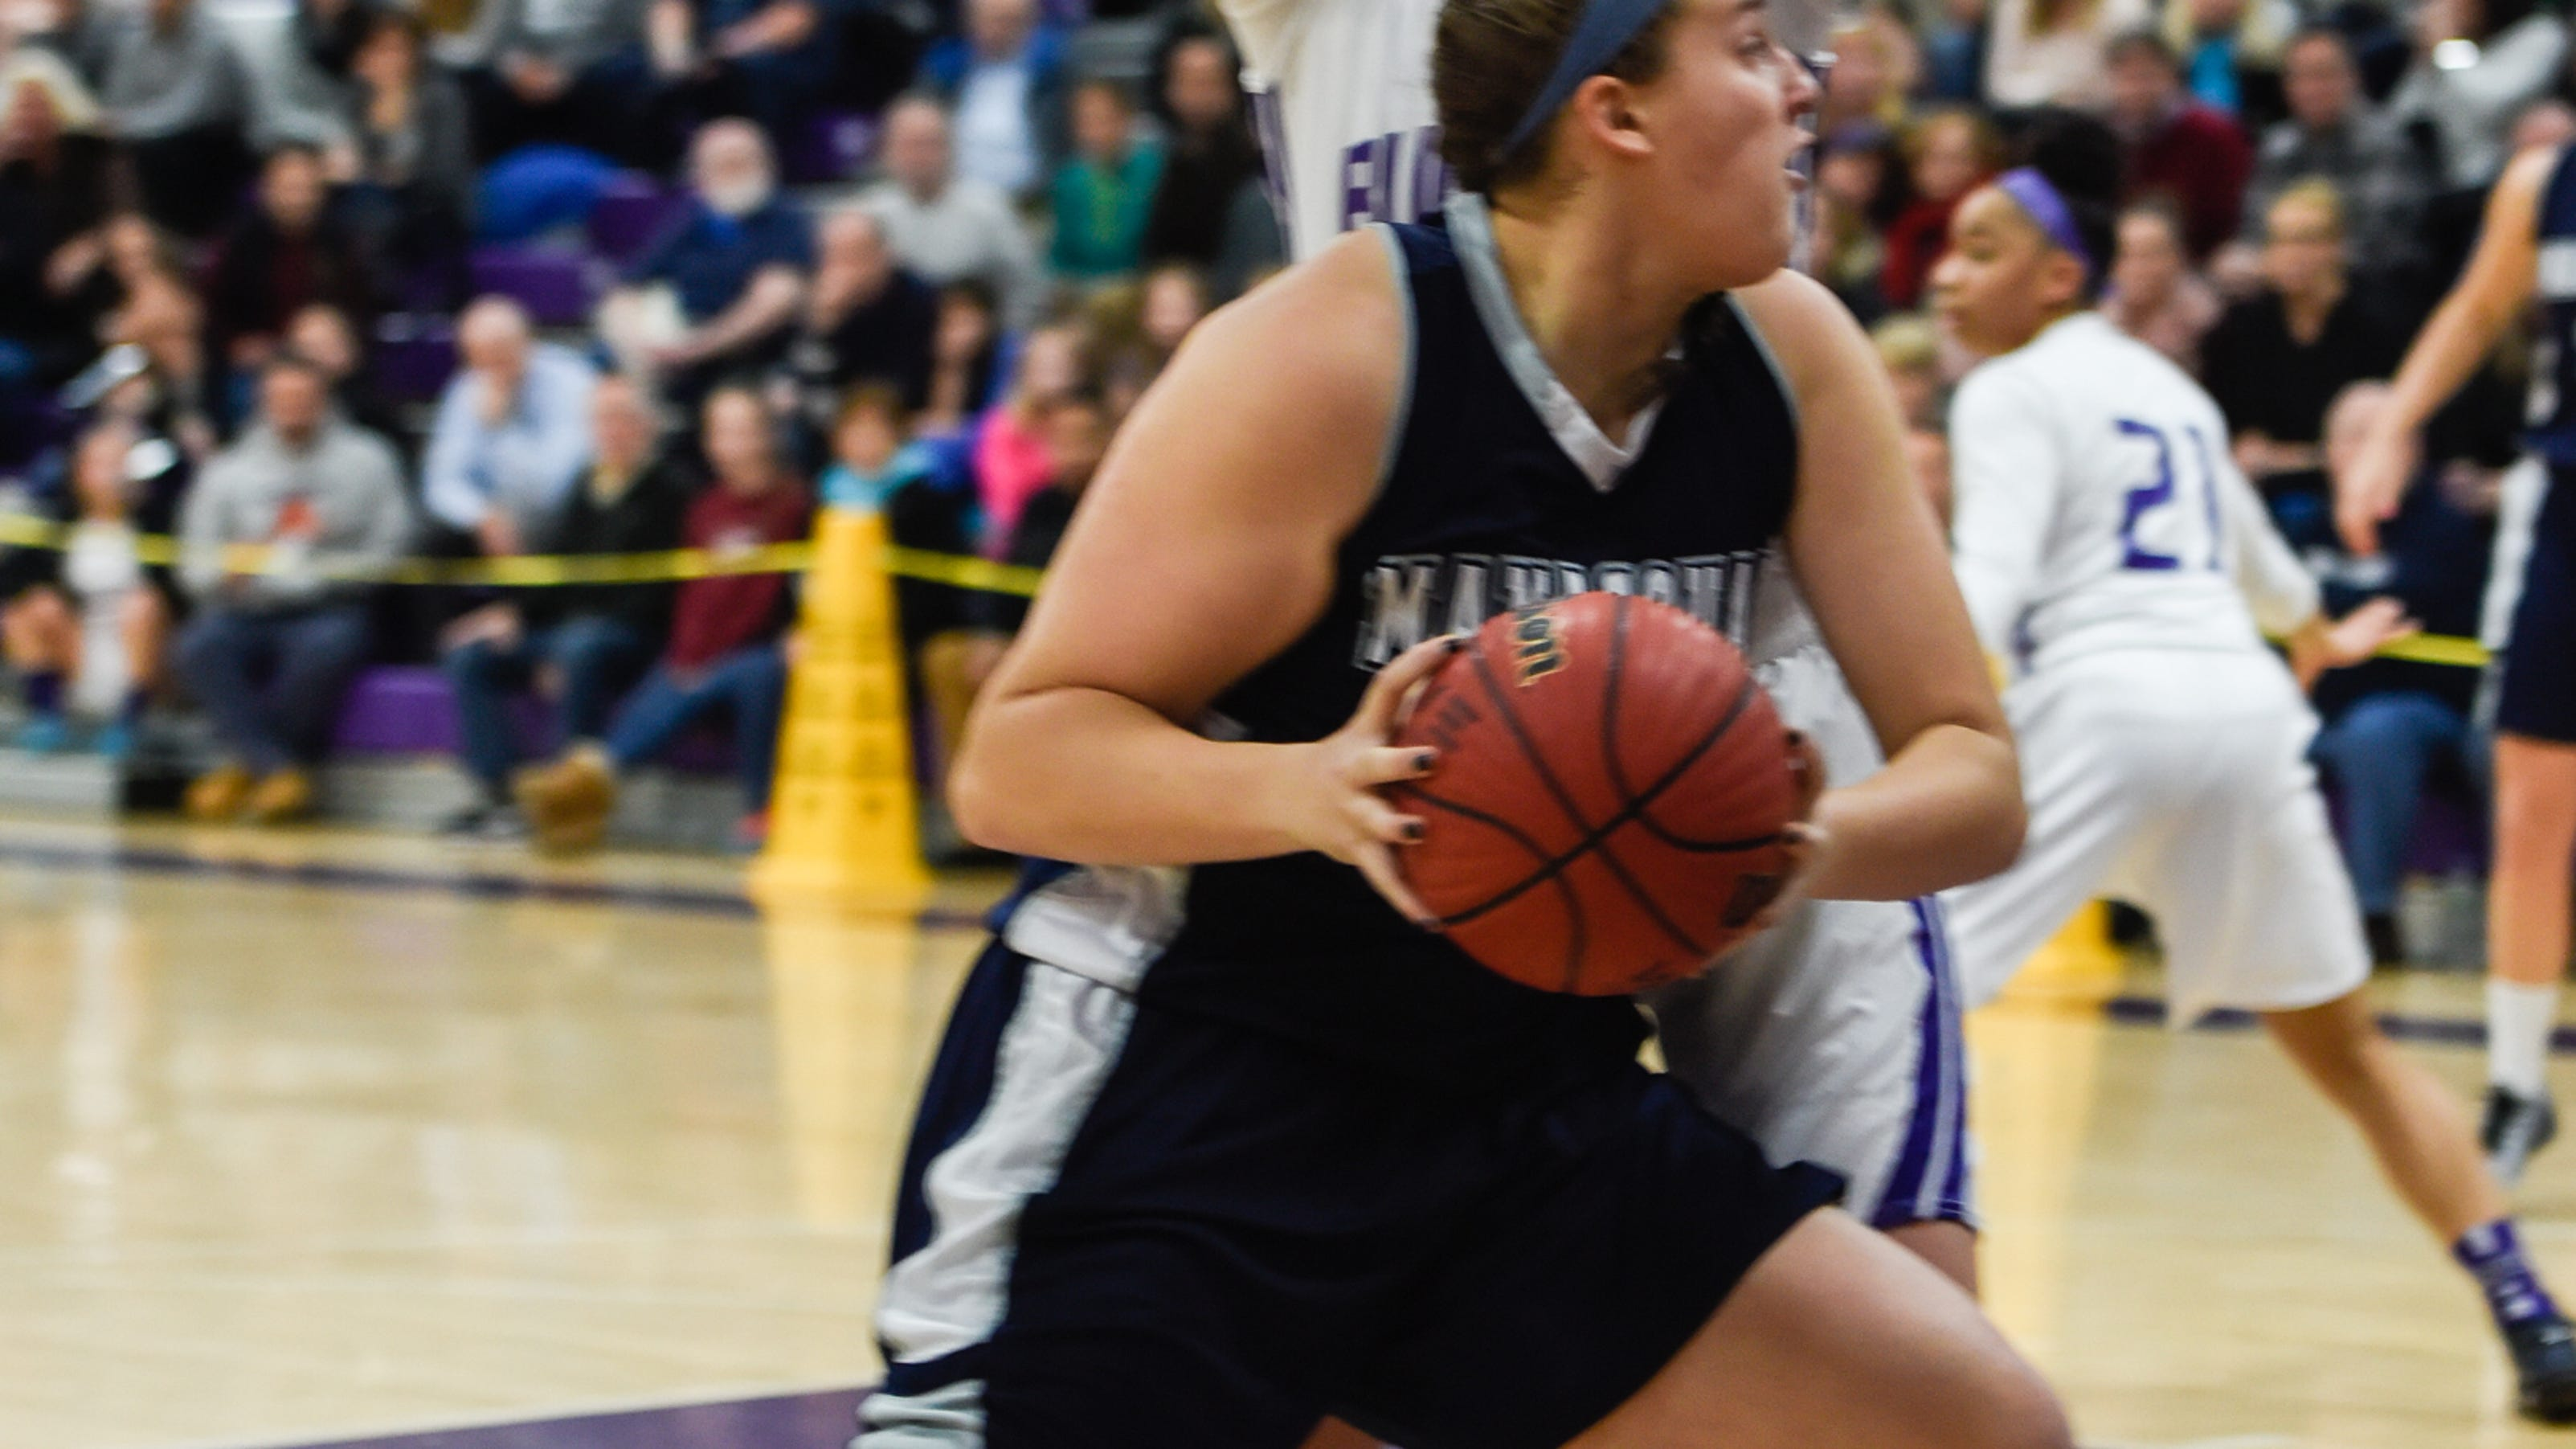 Shore girls hoops results from 1/23 - Asbury Park Press